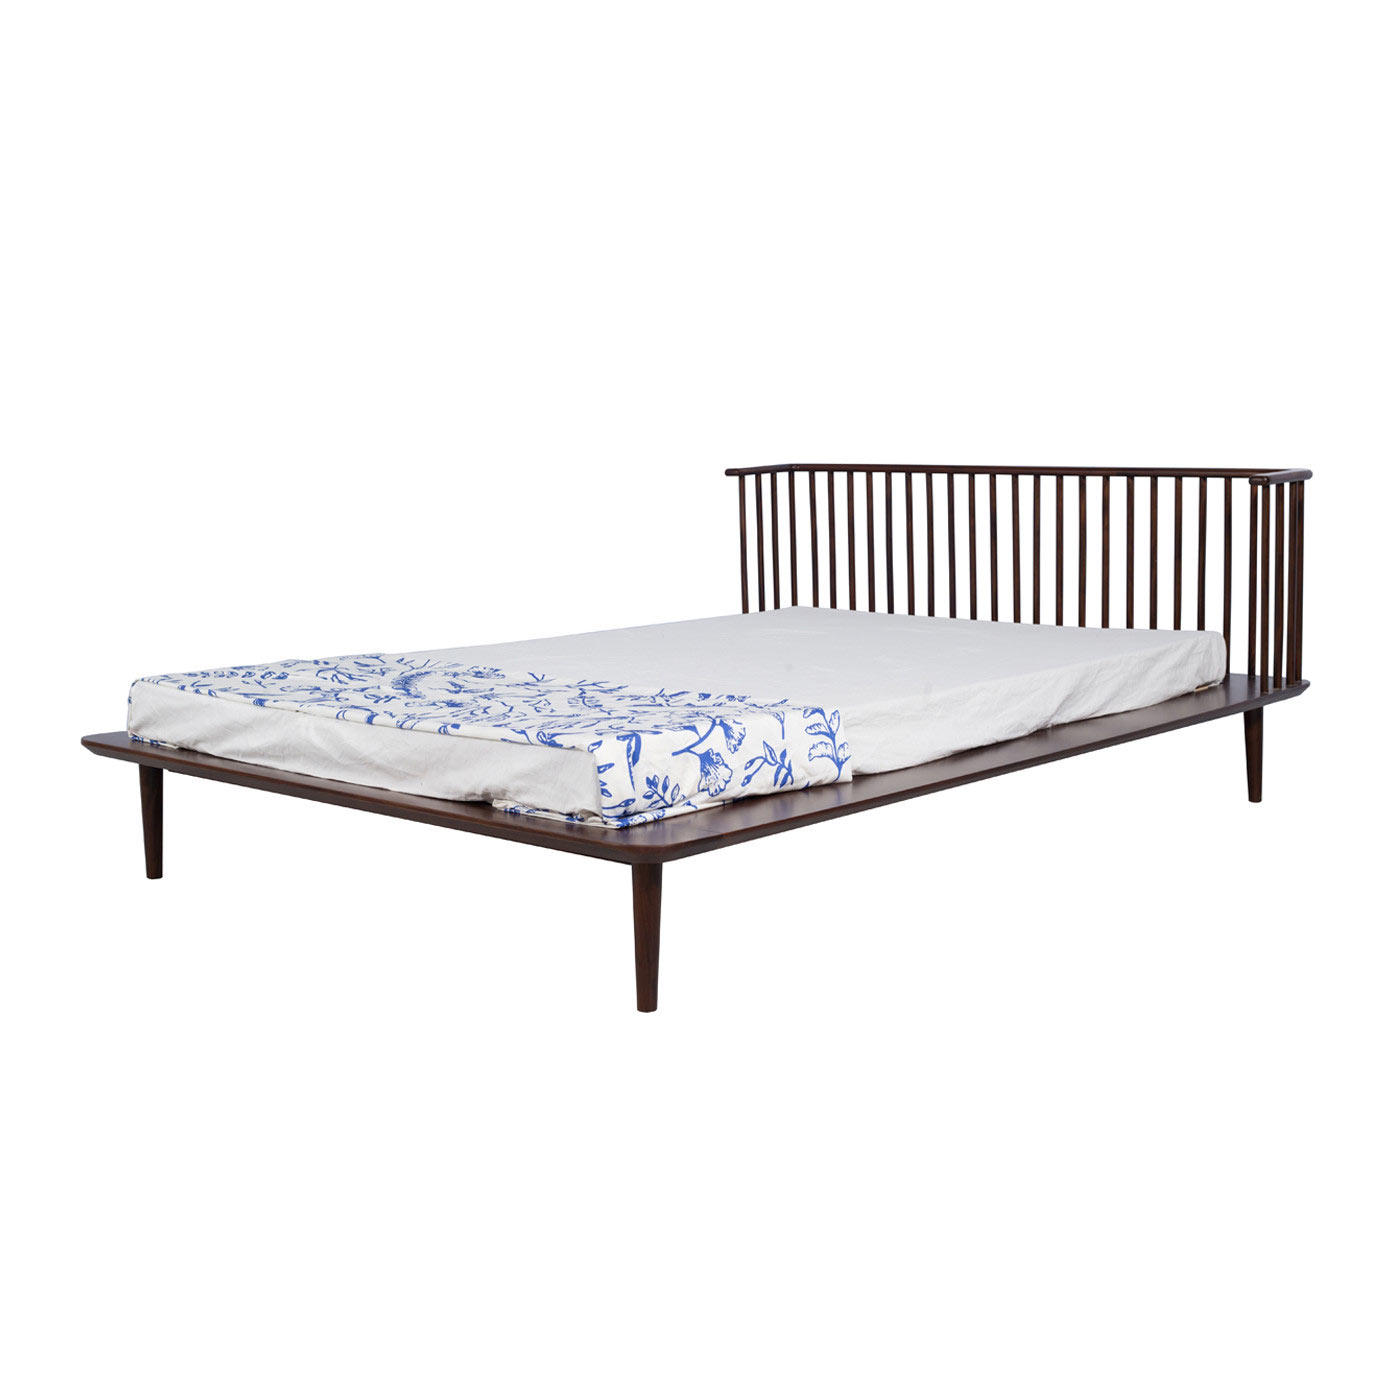 Jorasanko Dark Queen Bed